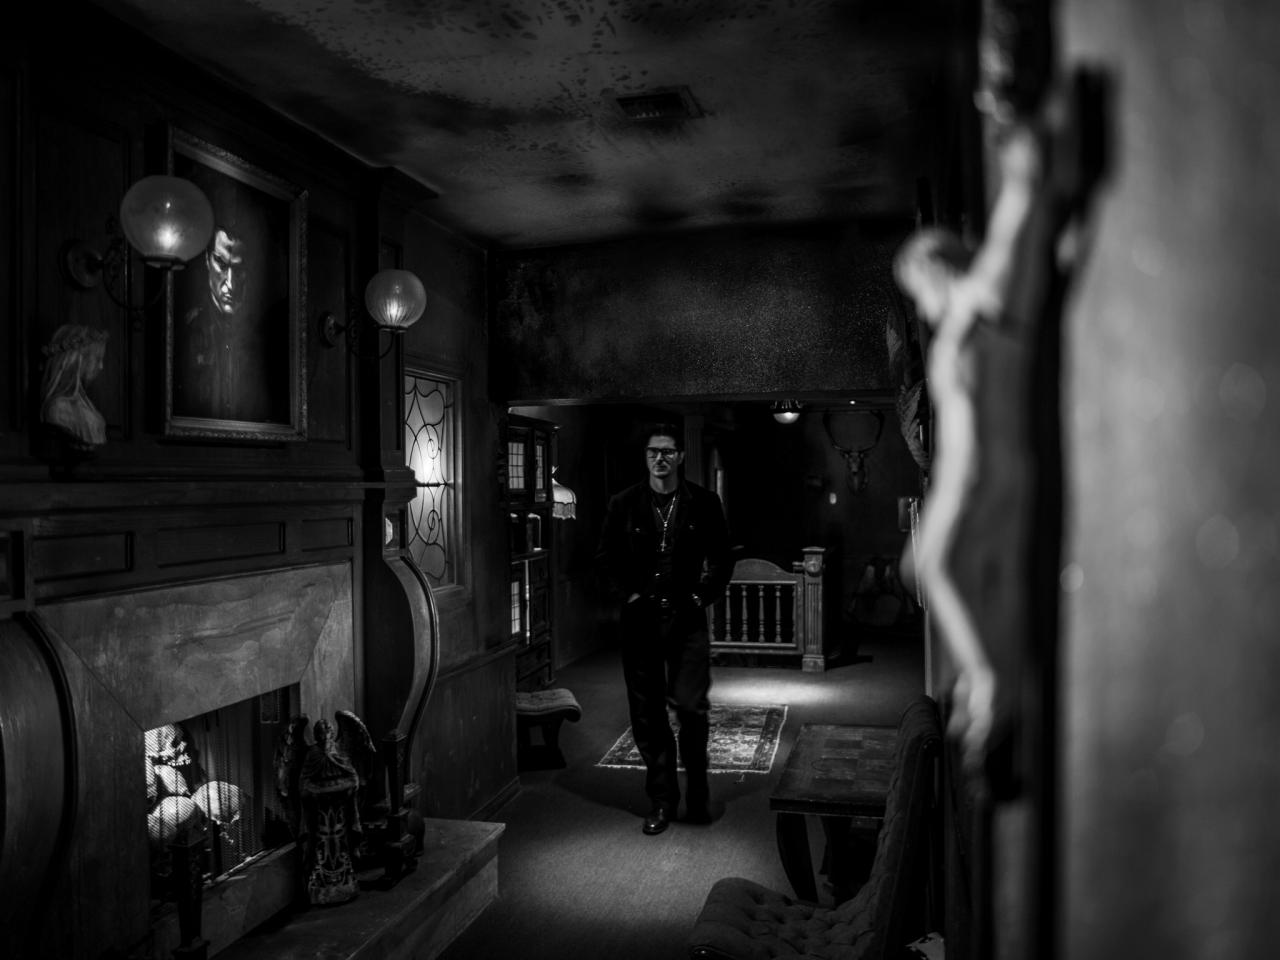 zak bagans - Zak Bagans Talks Deadly Possessions, His Museum, and the Dangers of Haunted Objects